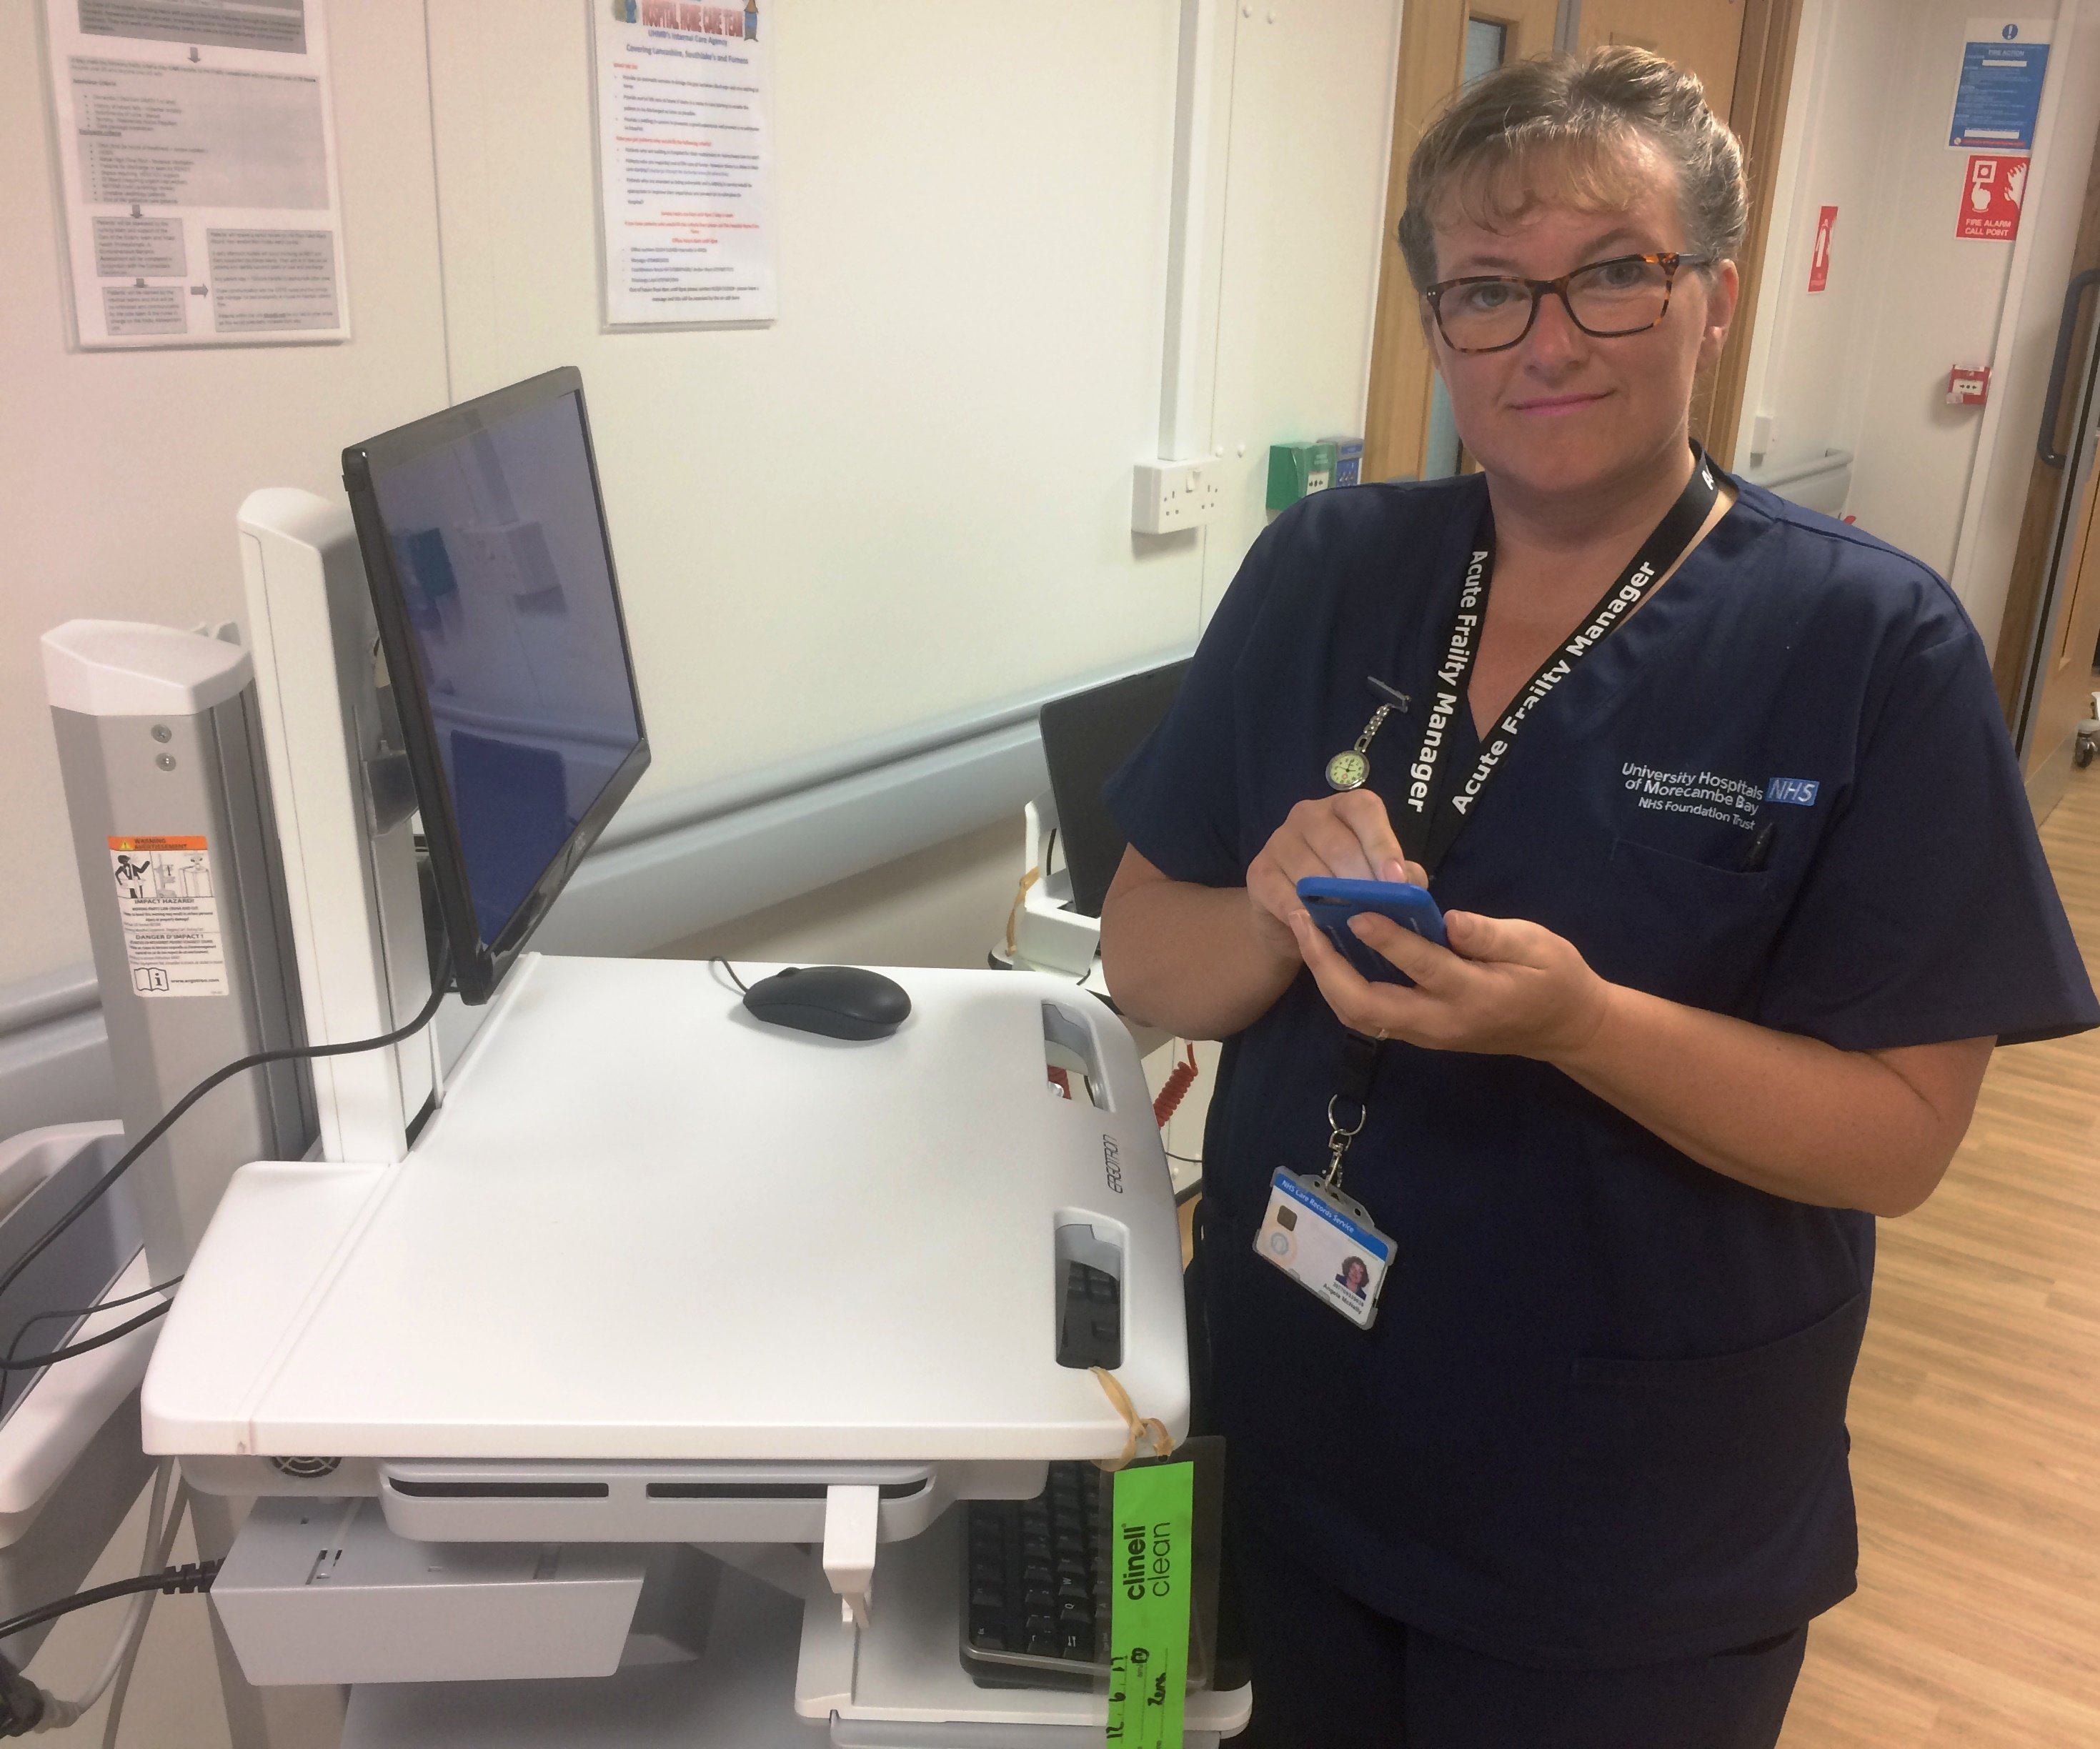 Mobile devices help nurses deliver healthcare at the point of care featured image